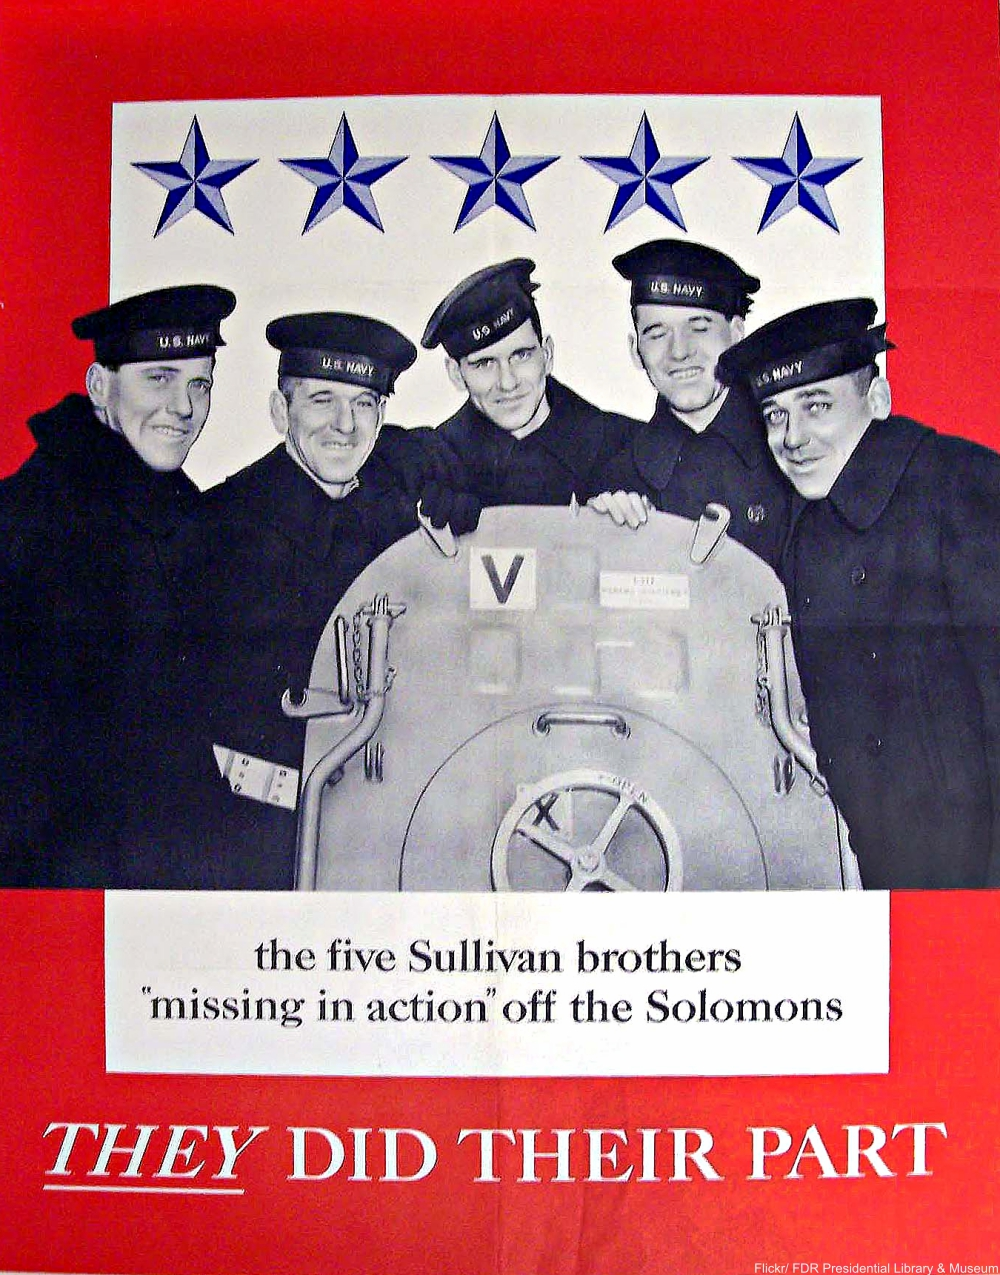 The Sad Story of the 5 Sullivan Brothers